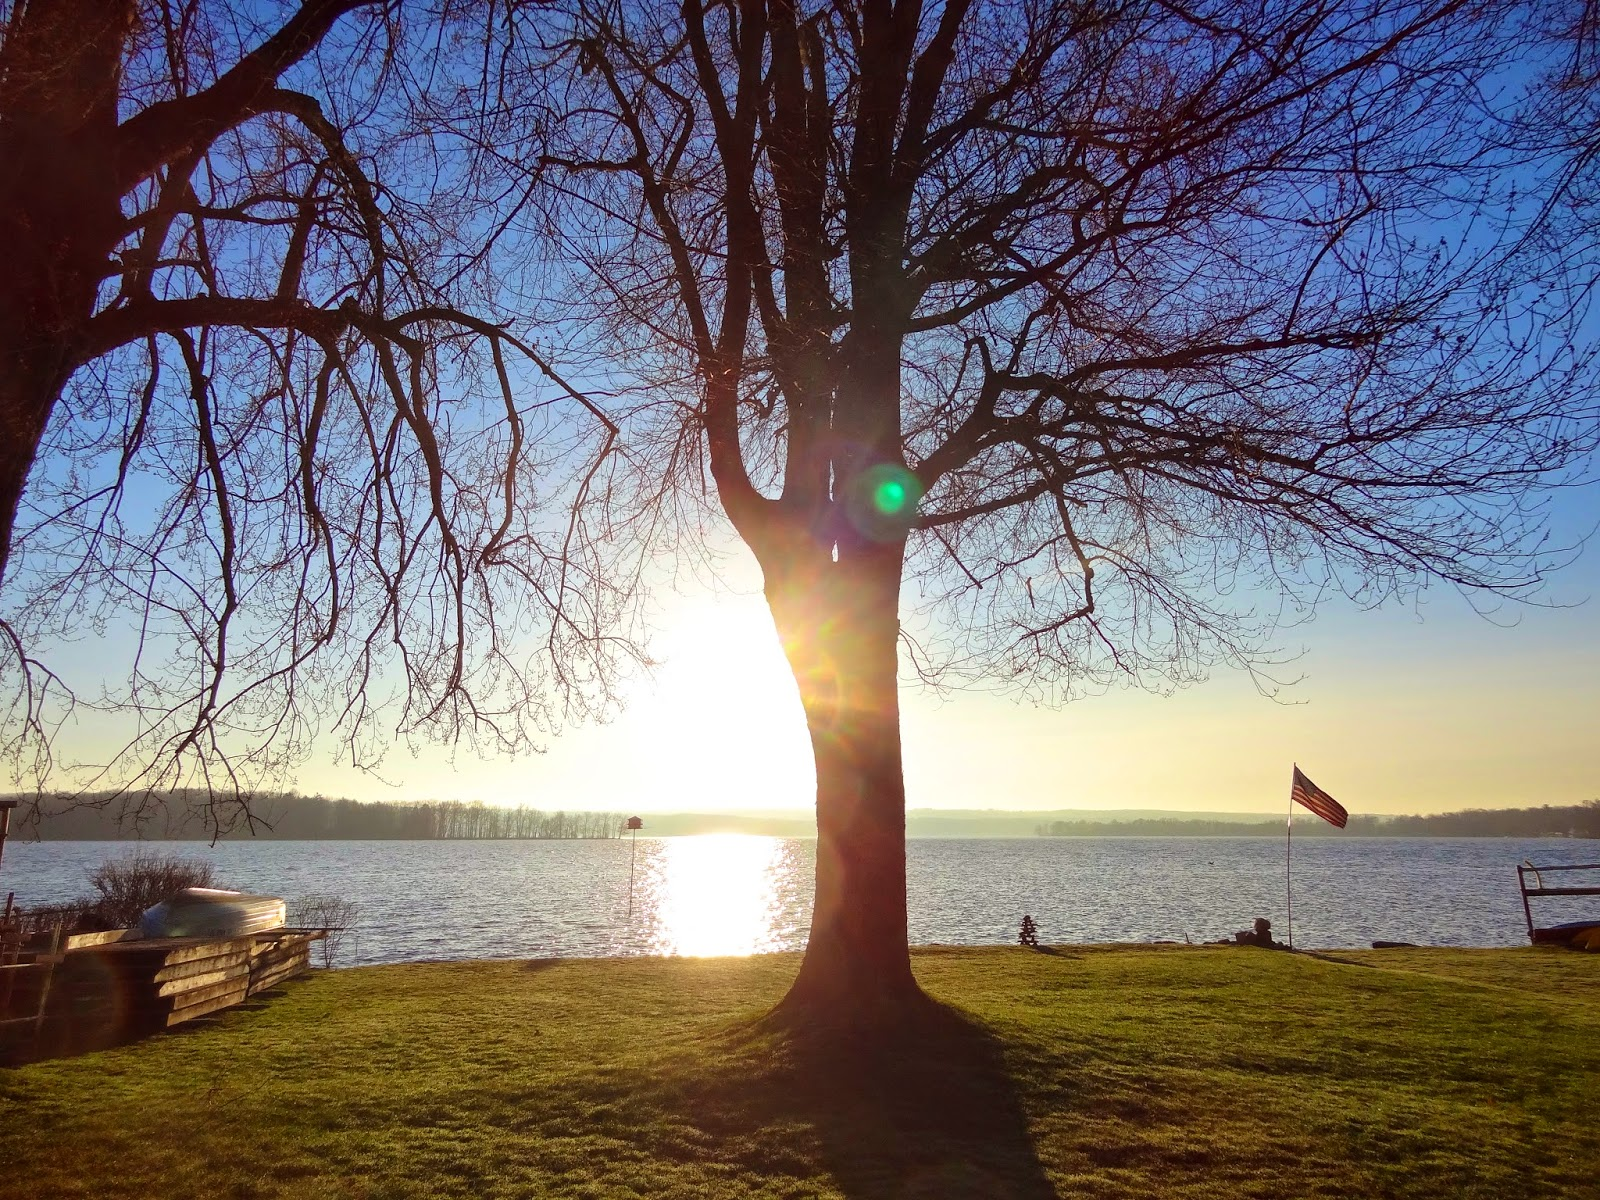 EARLY RISING ON CHAUTAUQUA LAKE: Another Crisp, Bright And ...